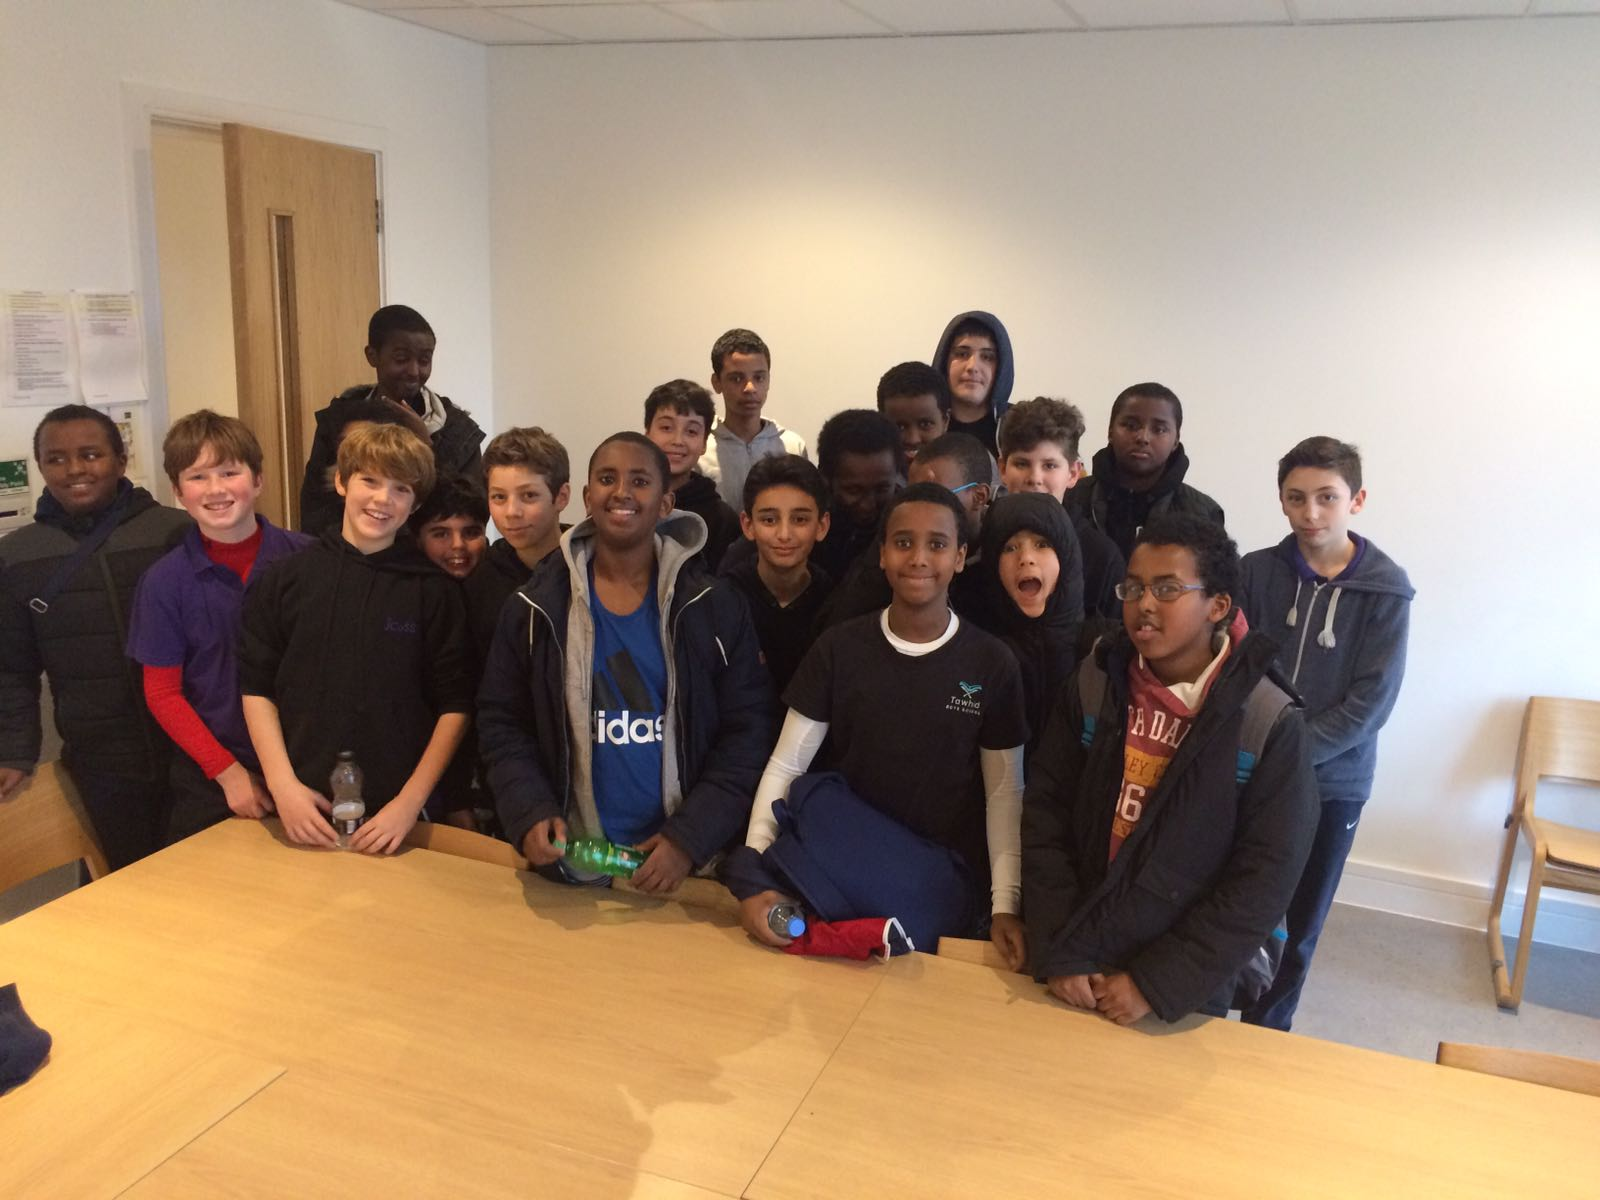 jcoss bringing different faiths together through football